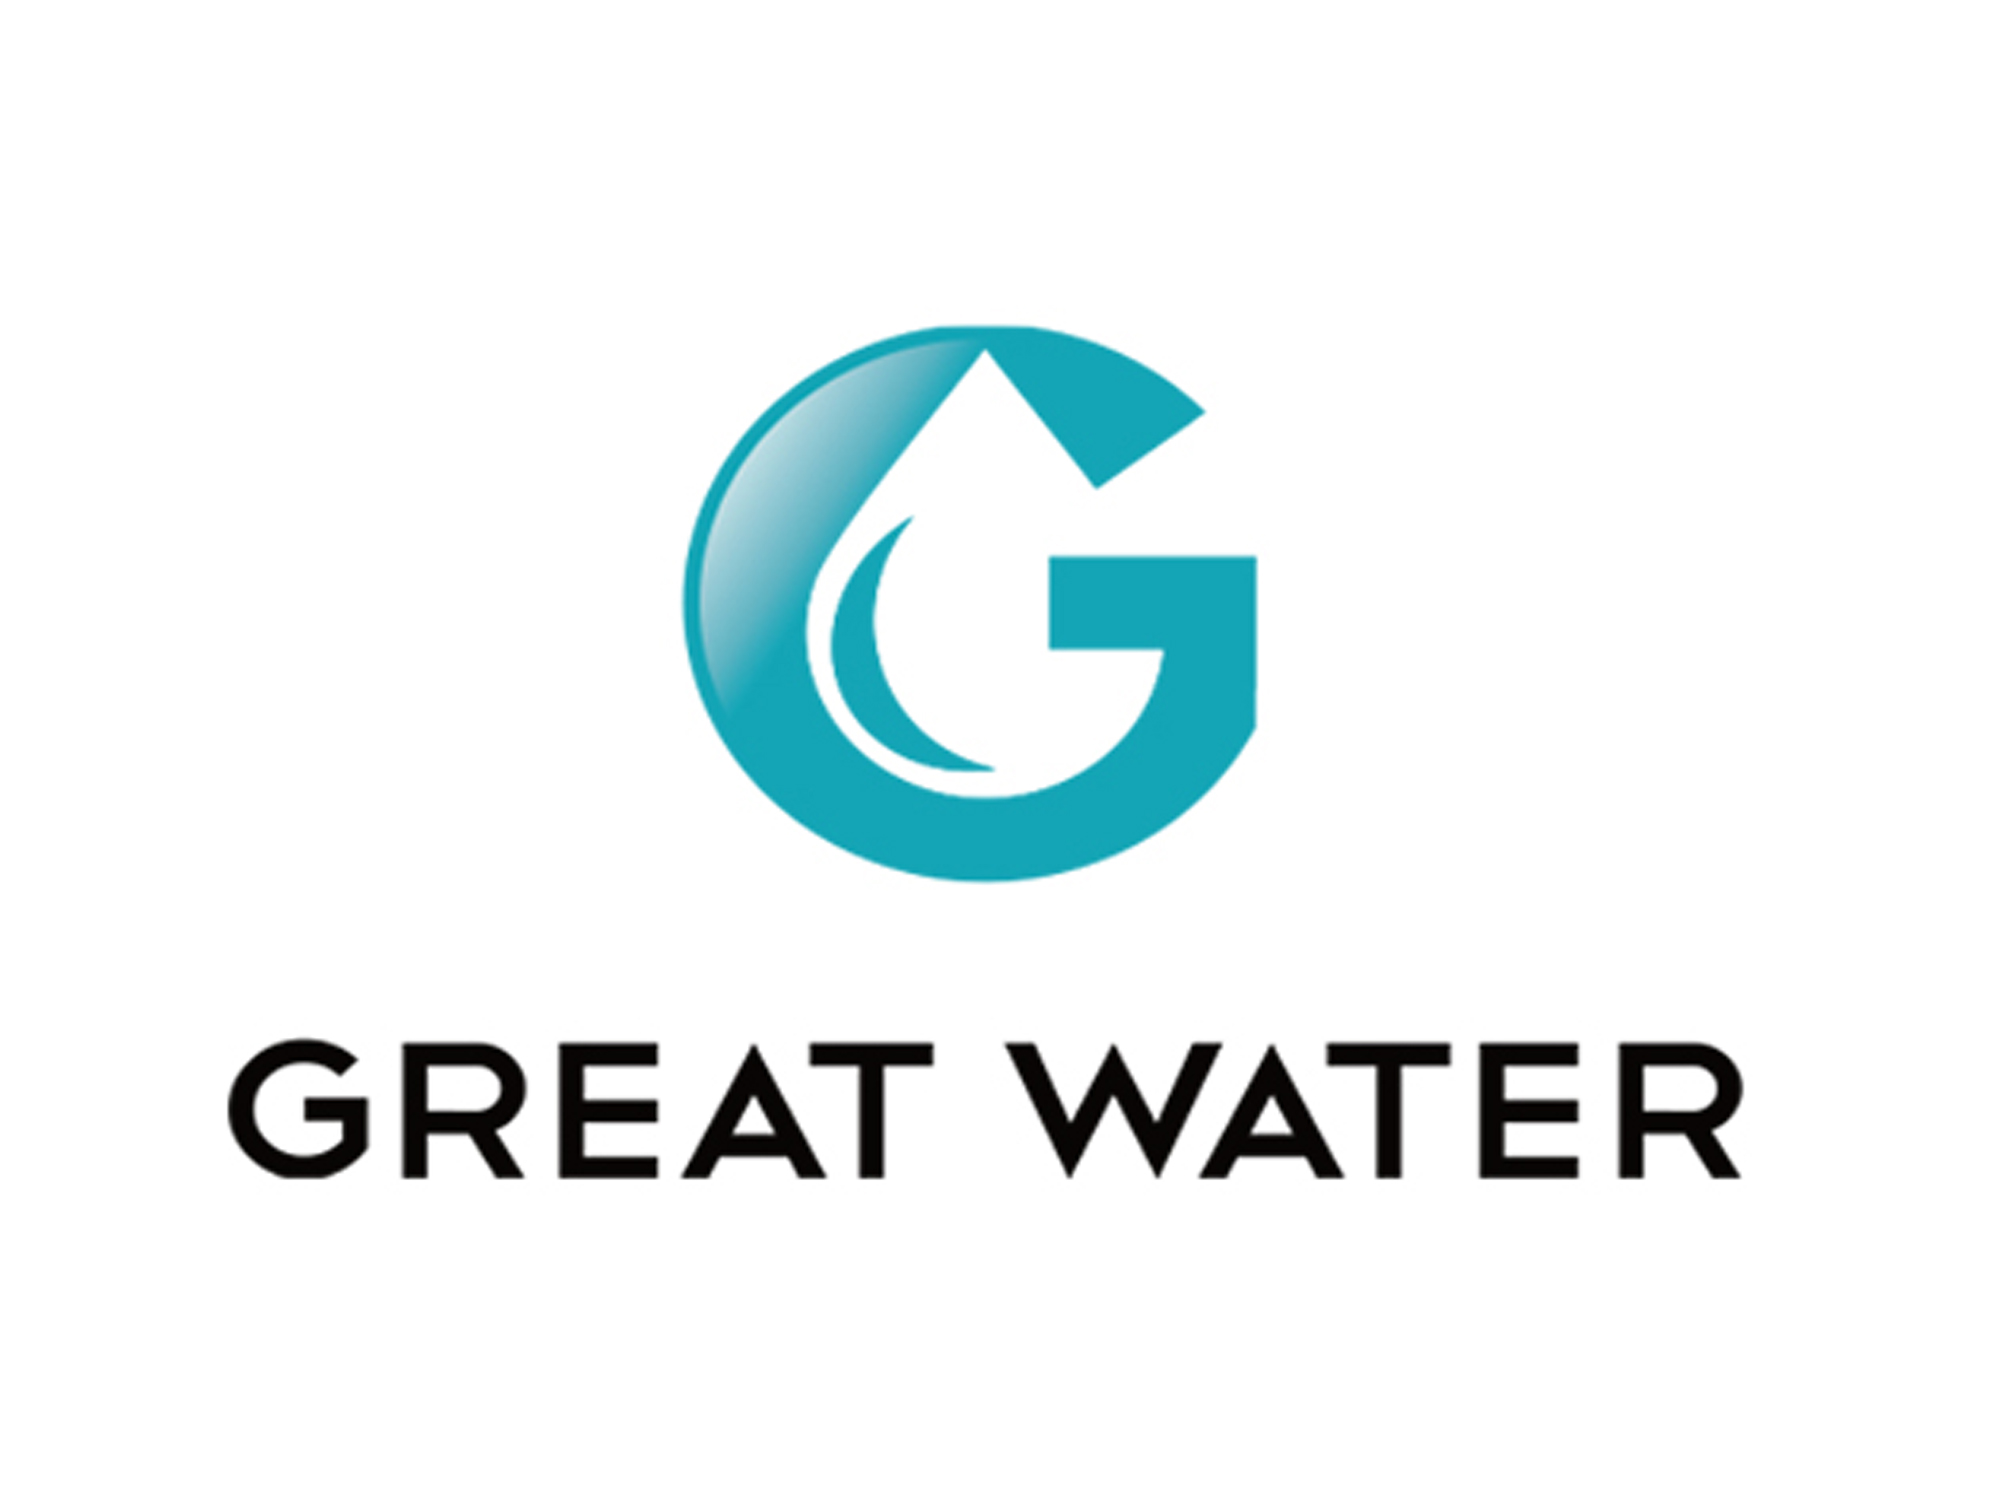 Great-water-logo